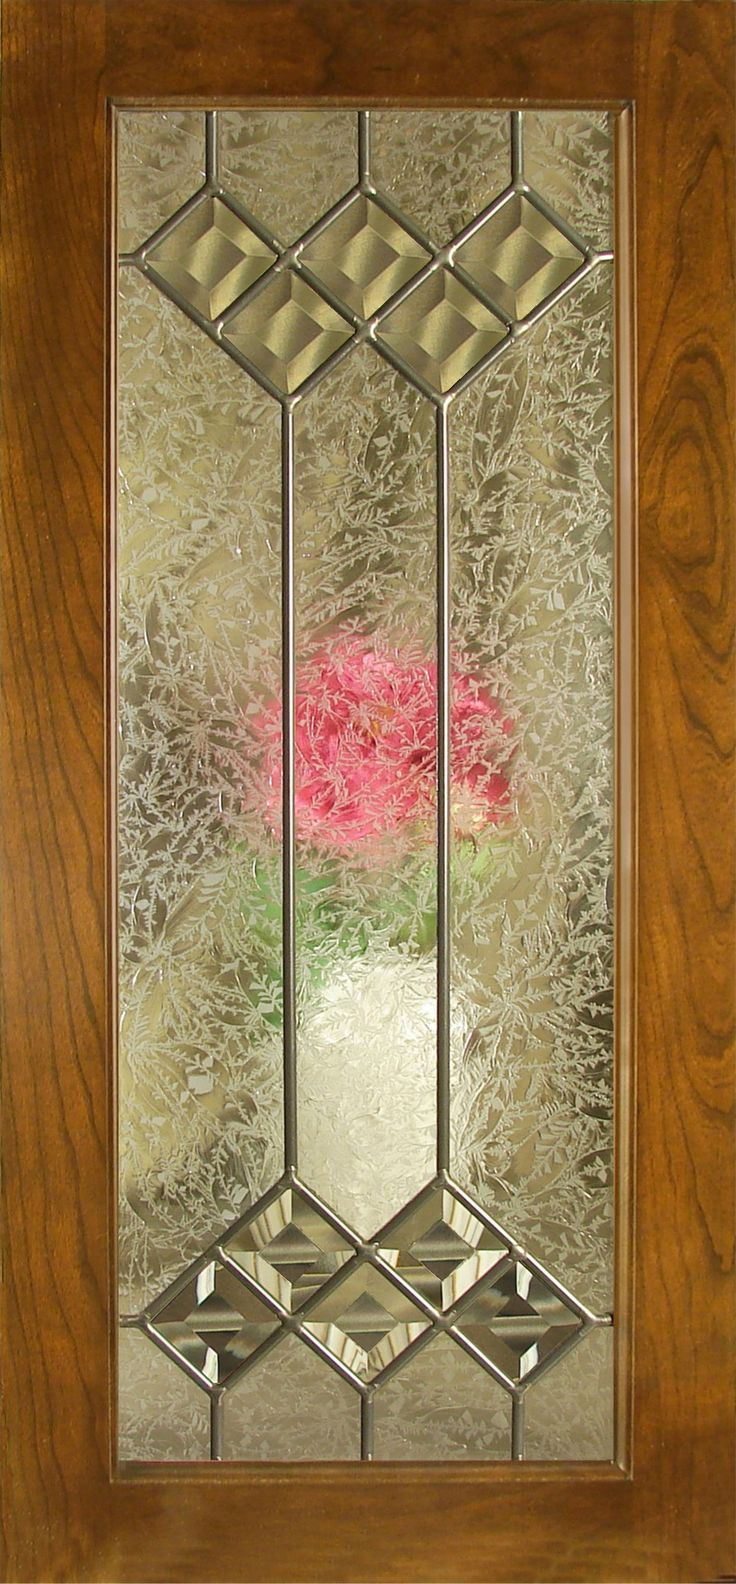 Kitchen cabinet stained glass panel insert - Leaded Glass Inserts For Accent Cabinet Doors Walzcraft